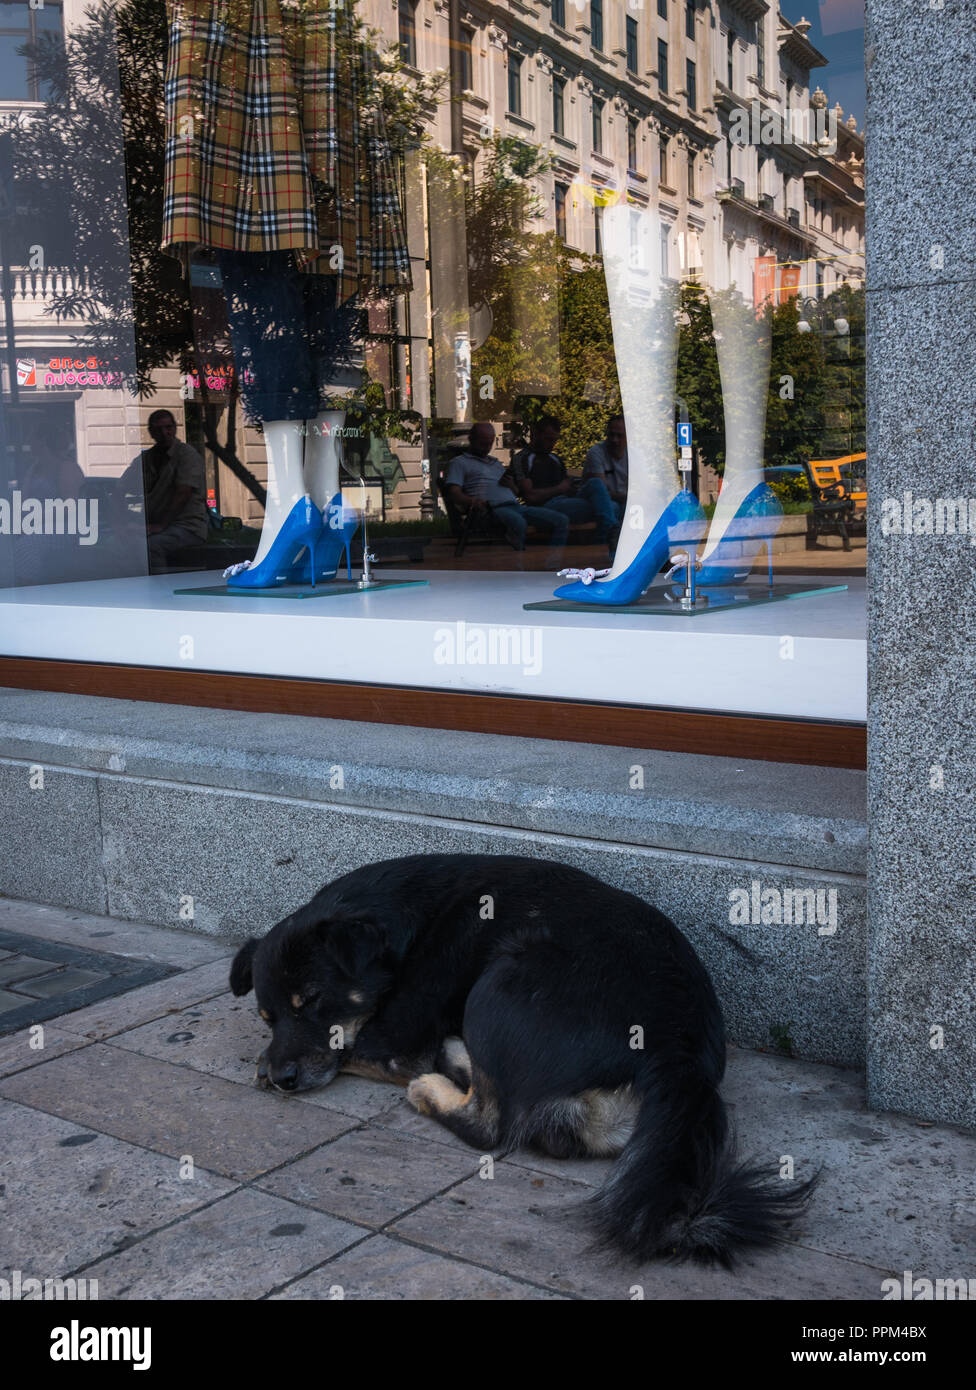 A stray dog snoozes in the shade in front of a window display at the Burberry retail store in Freedom Square, Tbilisi, Georgia. - Stock Image